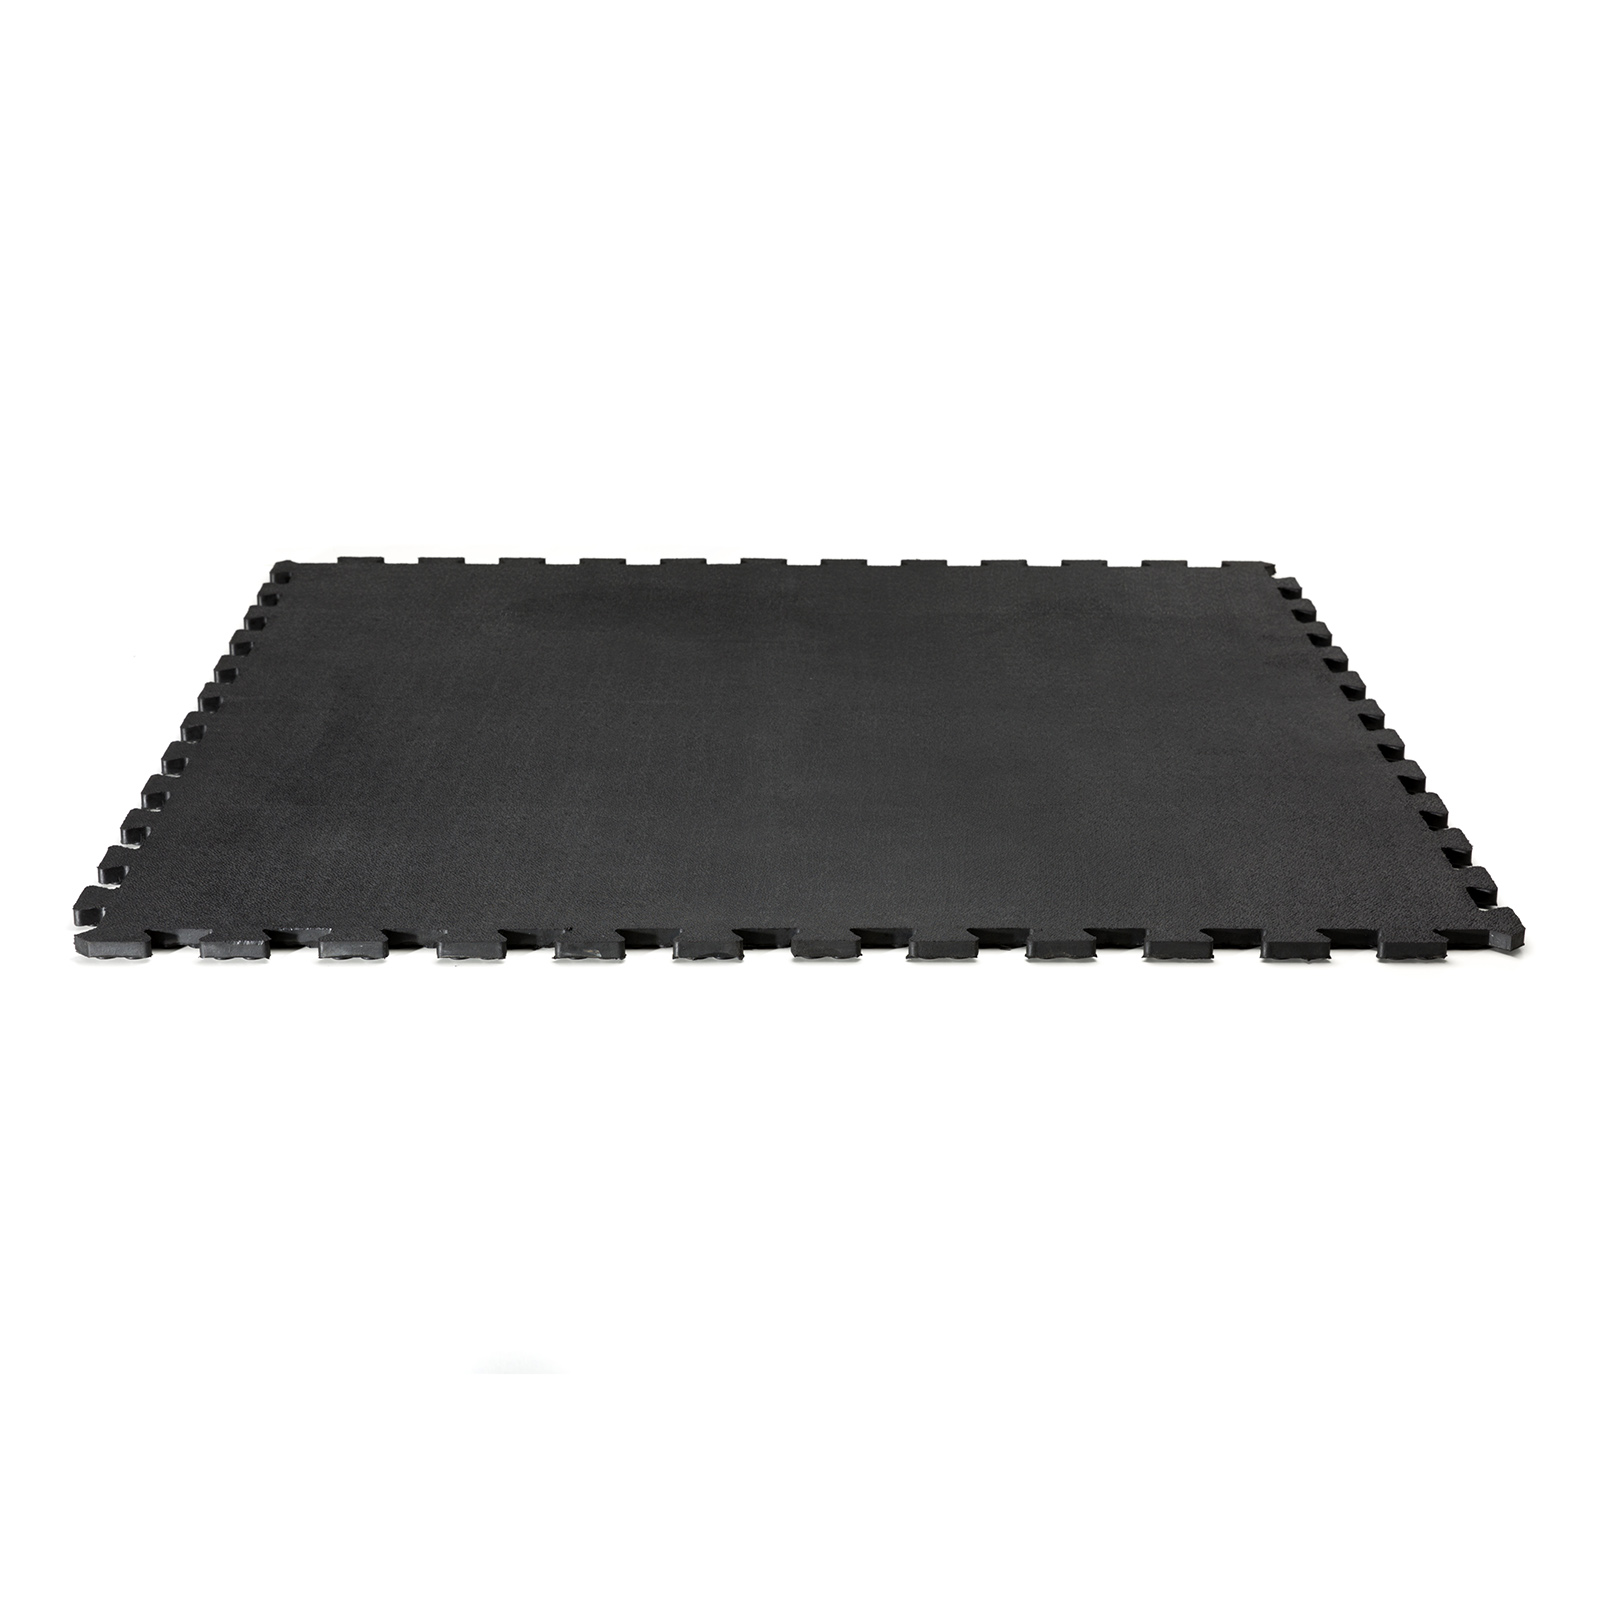 solid rubber tiles